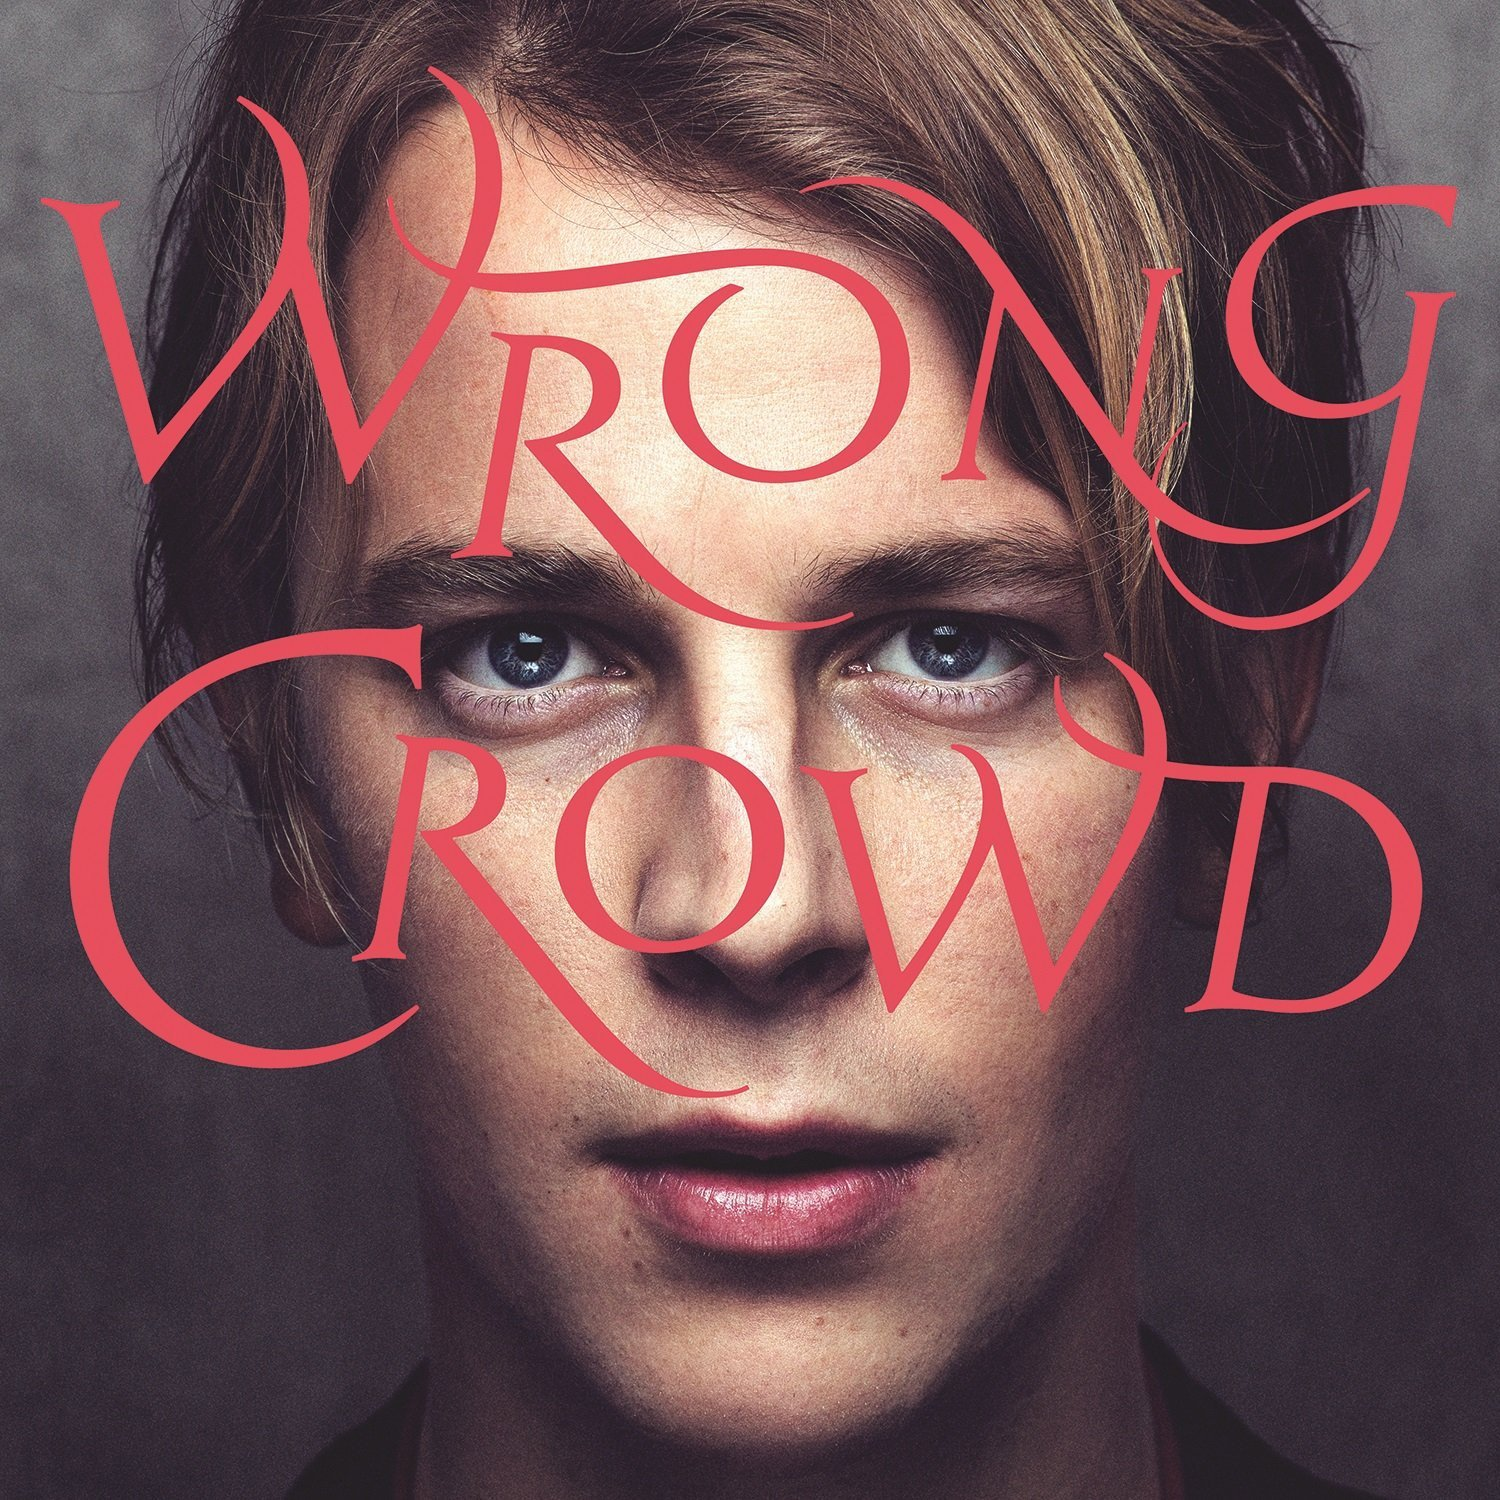 tom odell wrong crowd album free download